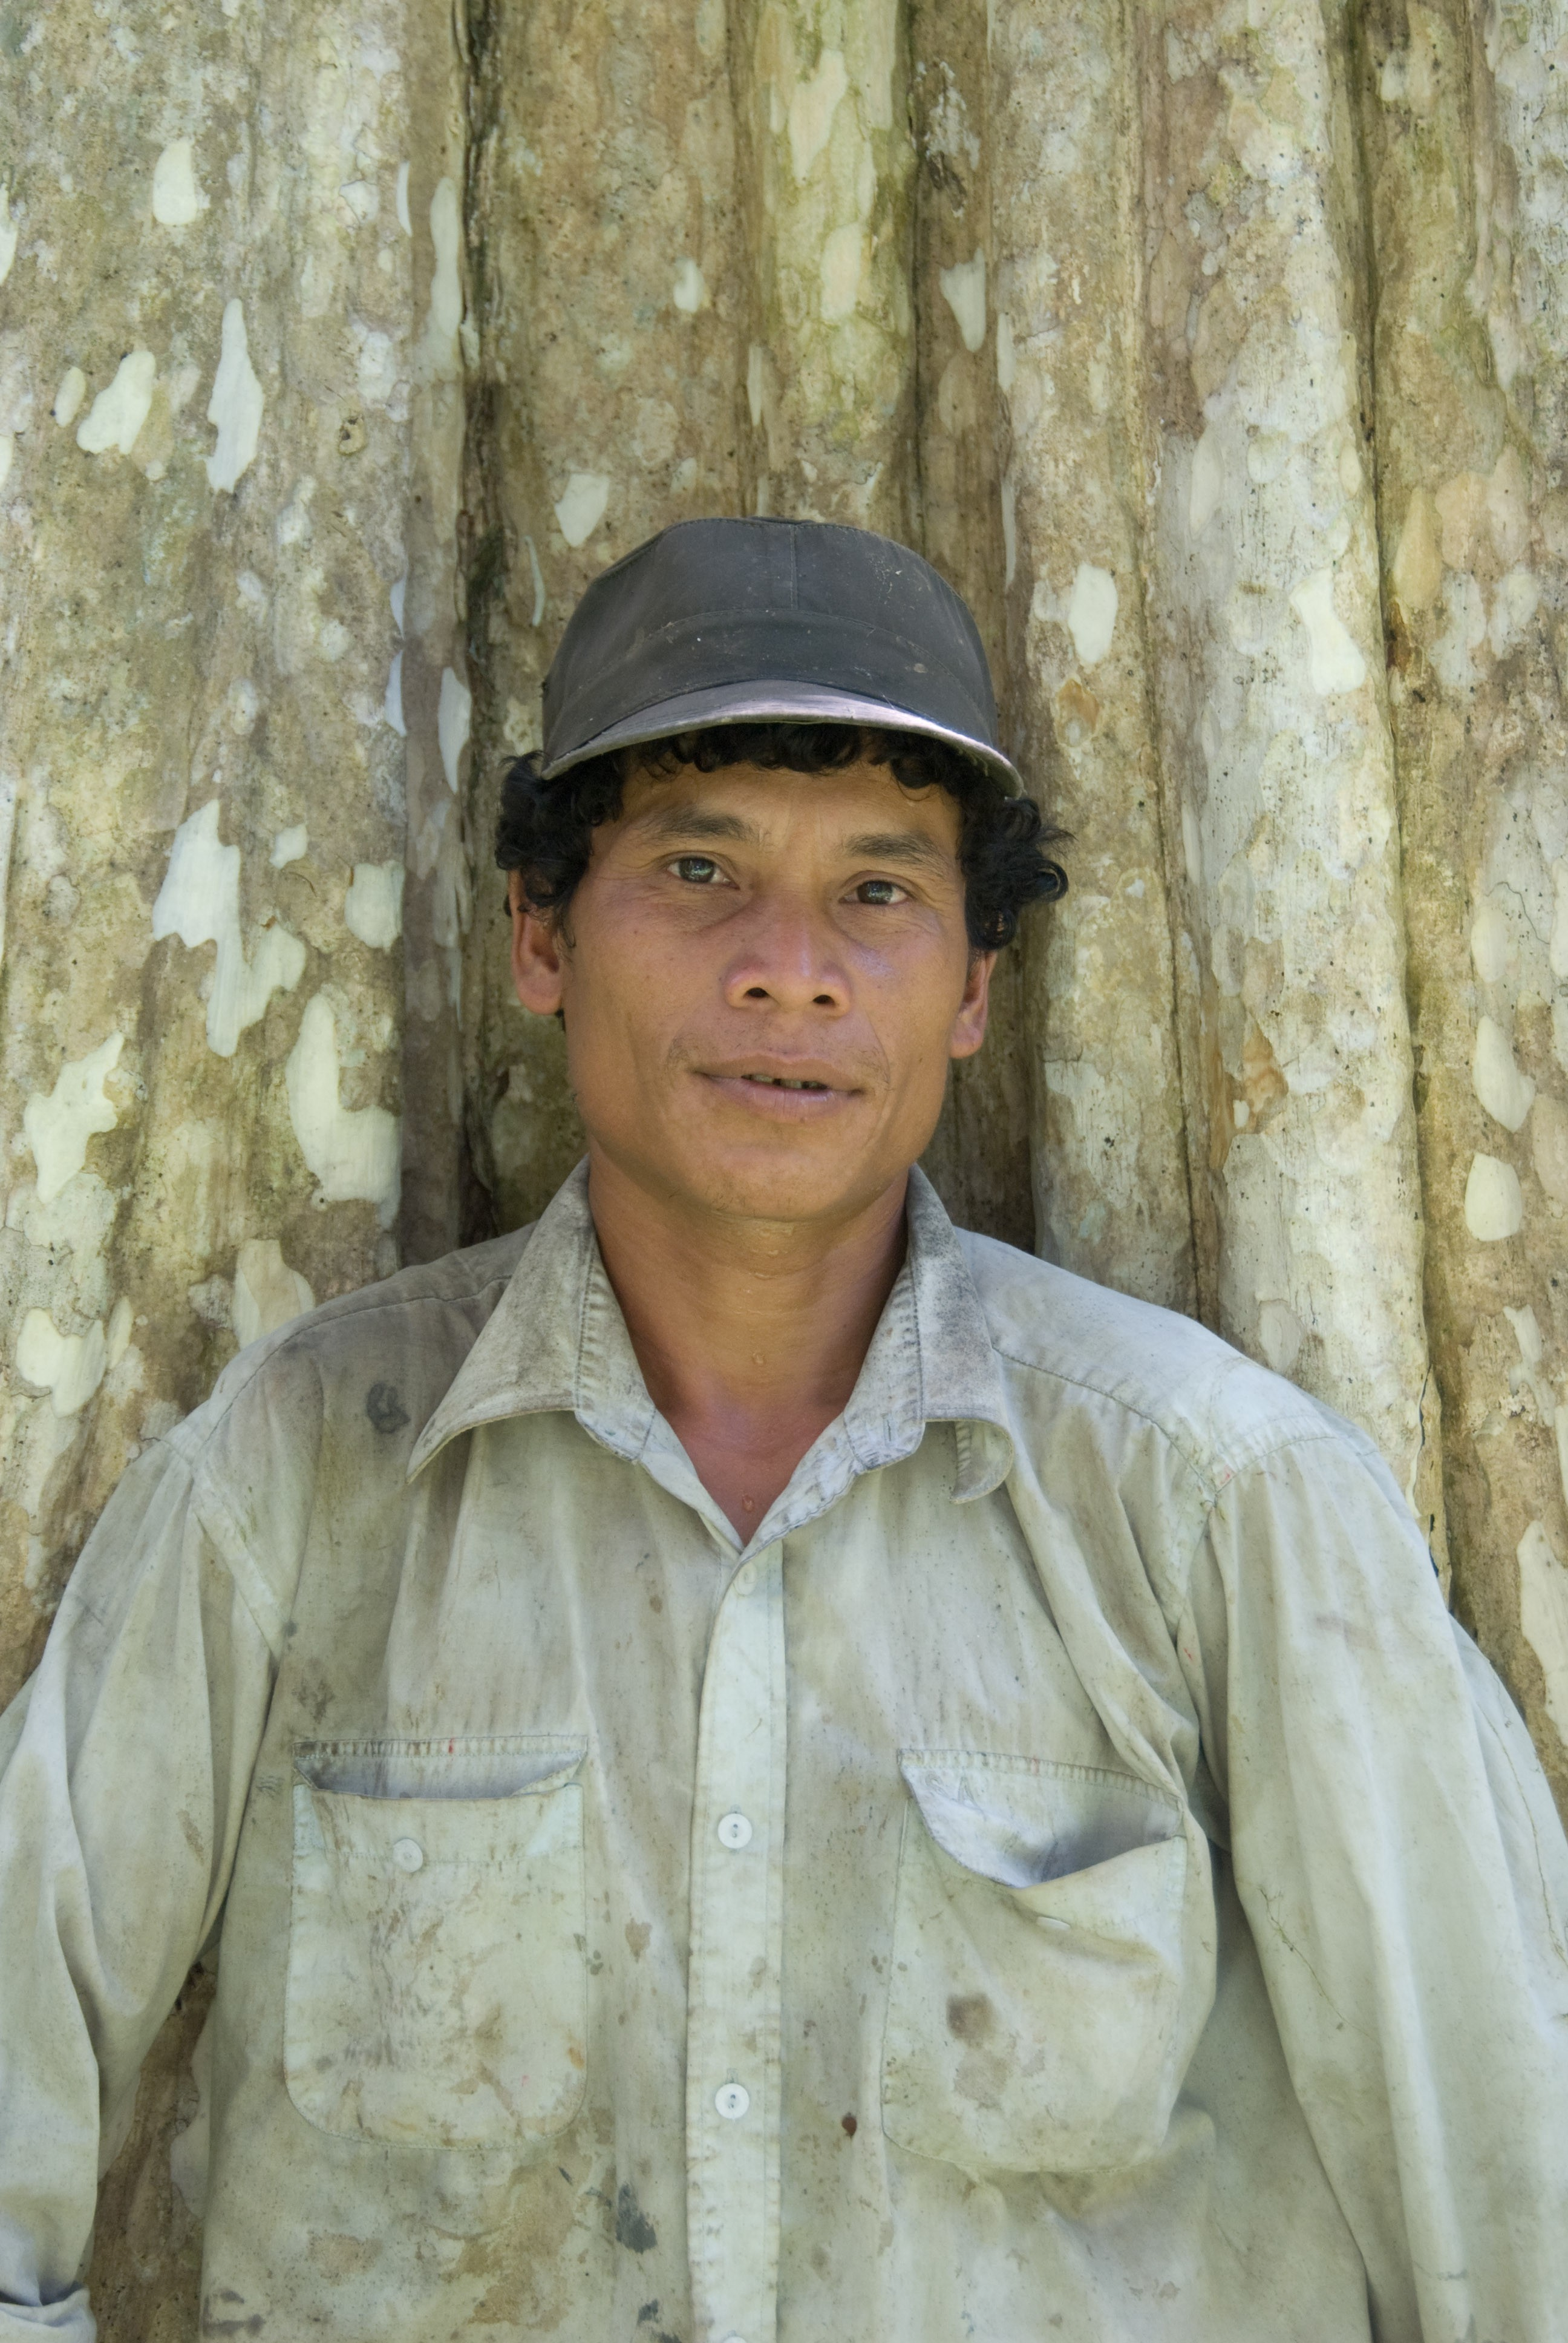 Image of Indigenous Kuy representative in front of large standing tree trunk